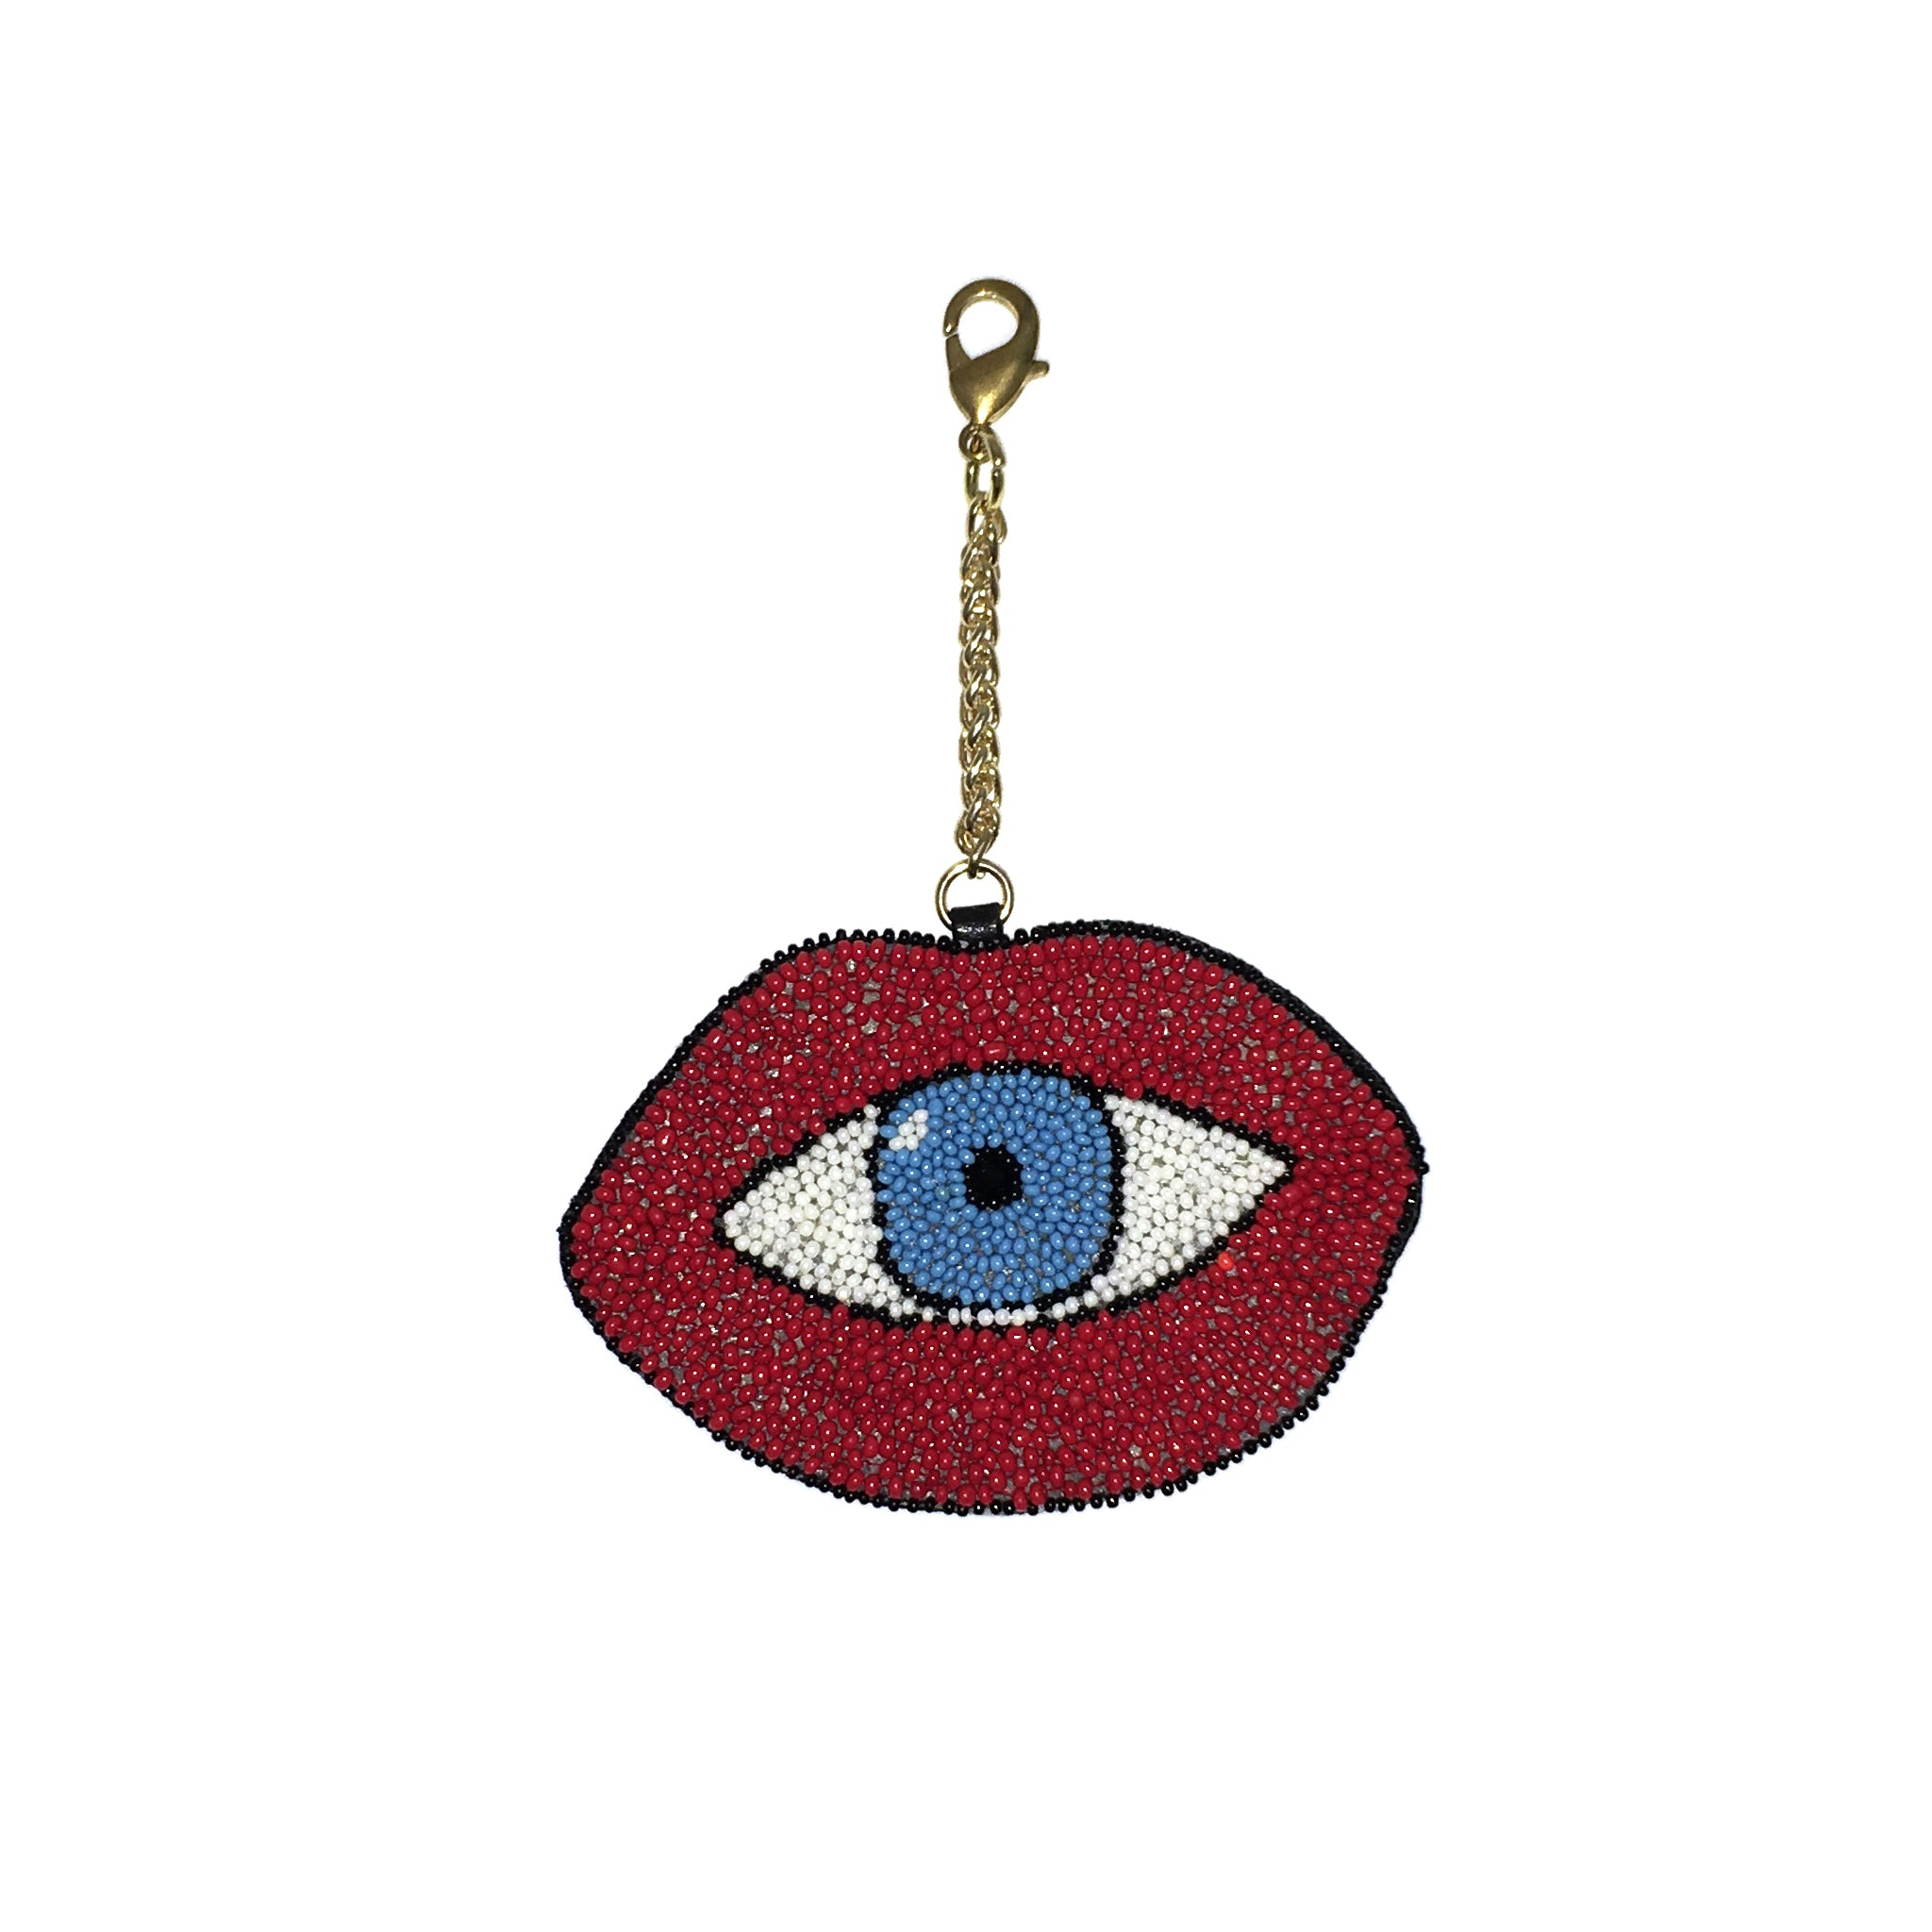 Blue Eye Bag Charm